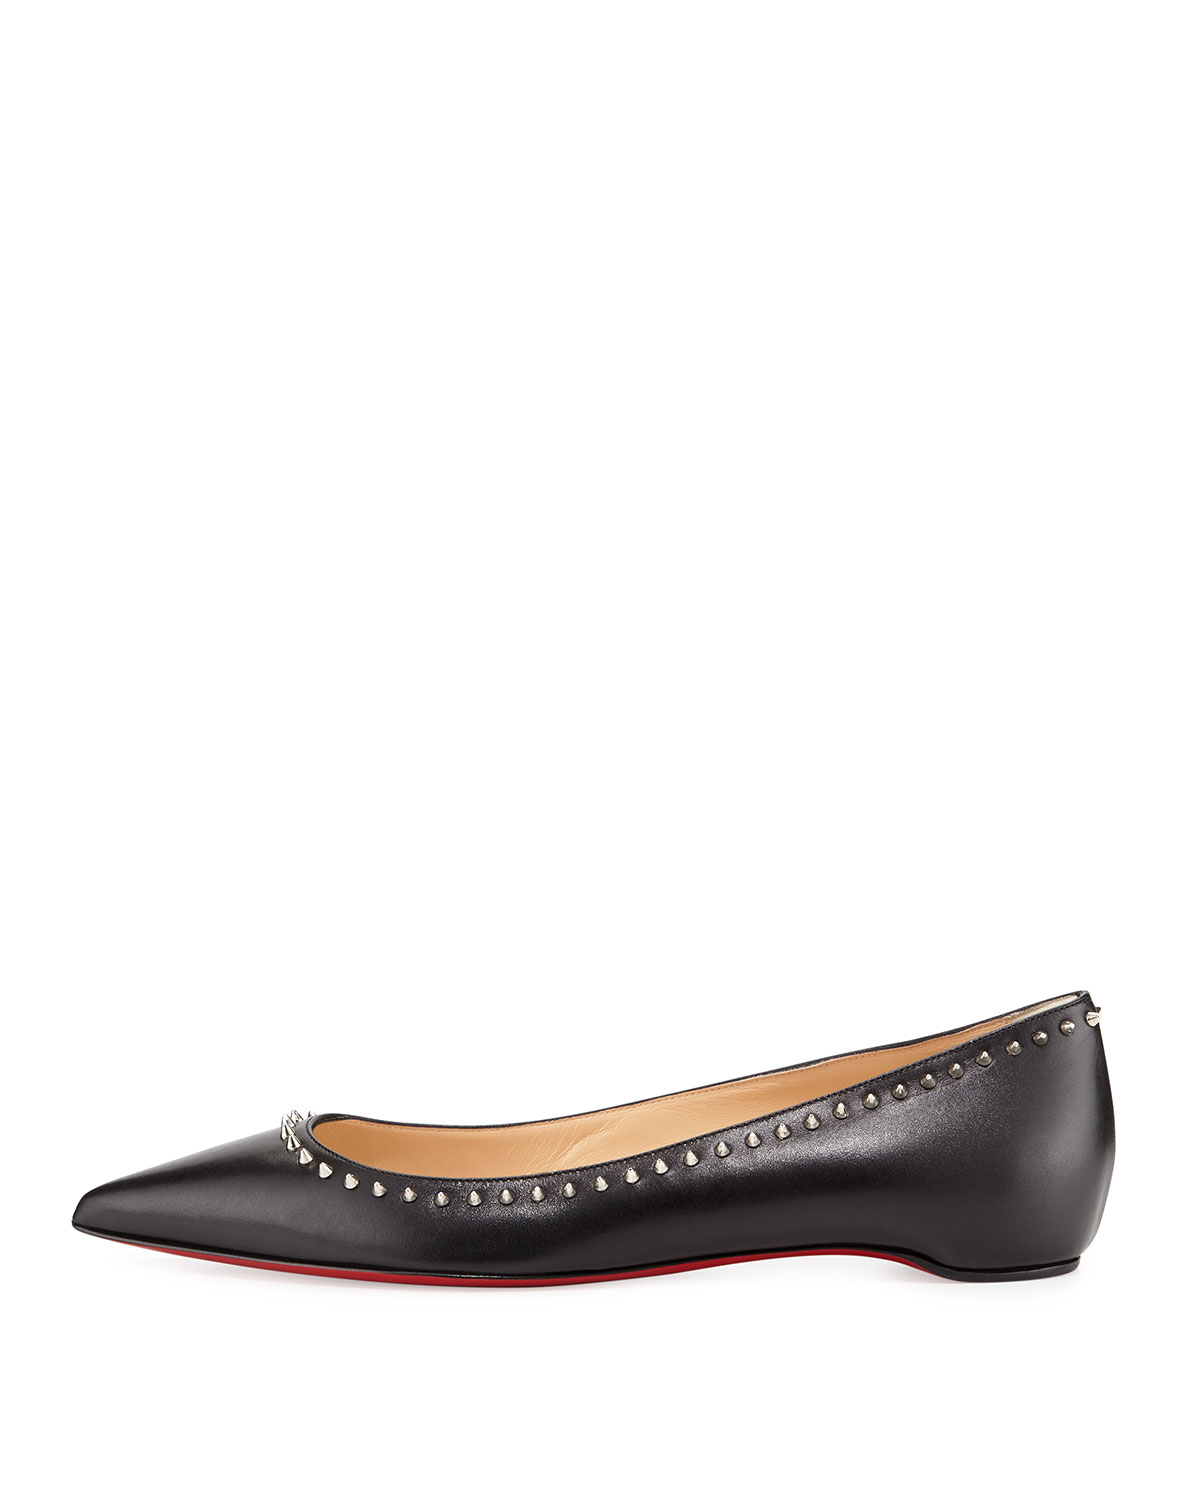 shoes replica usa - Christian louboutin Anjalina Studded Leather Ballet Flats in Black ...